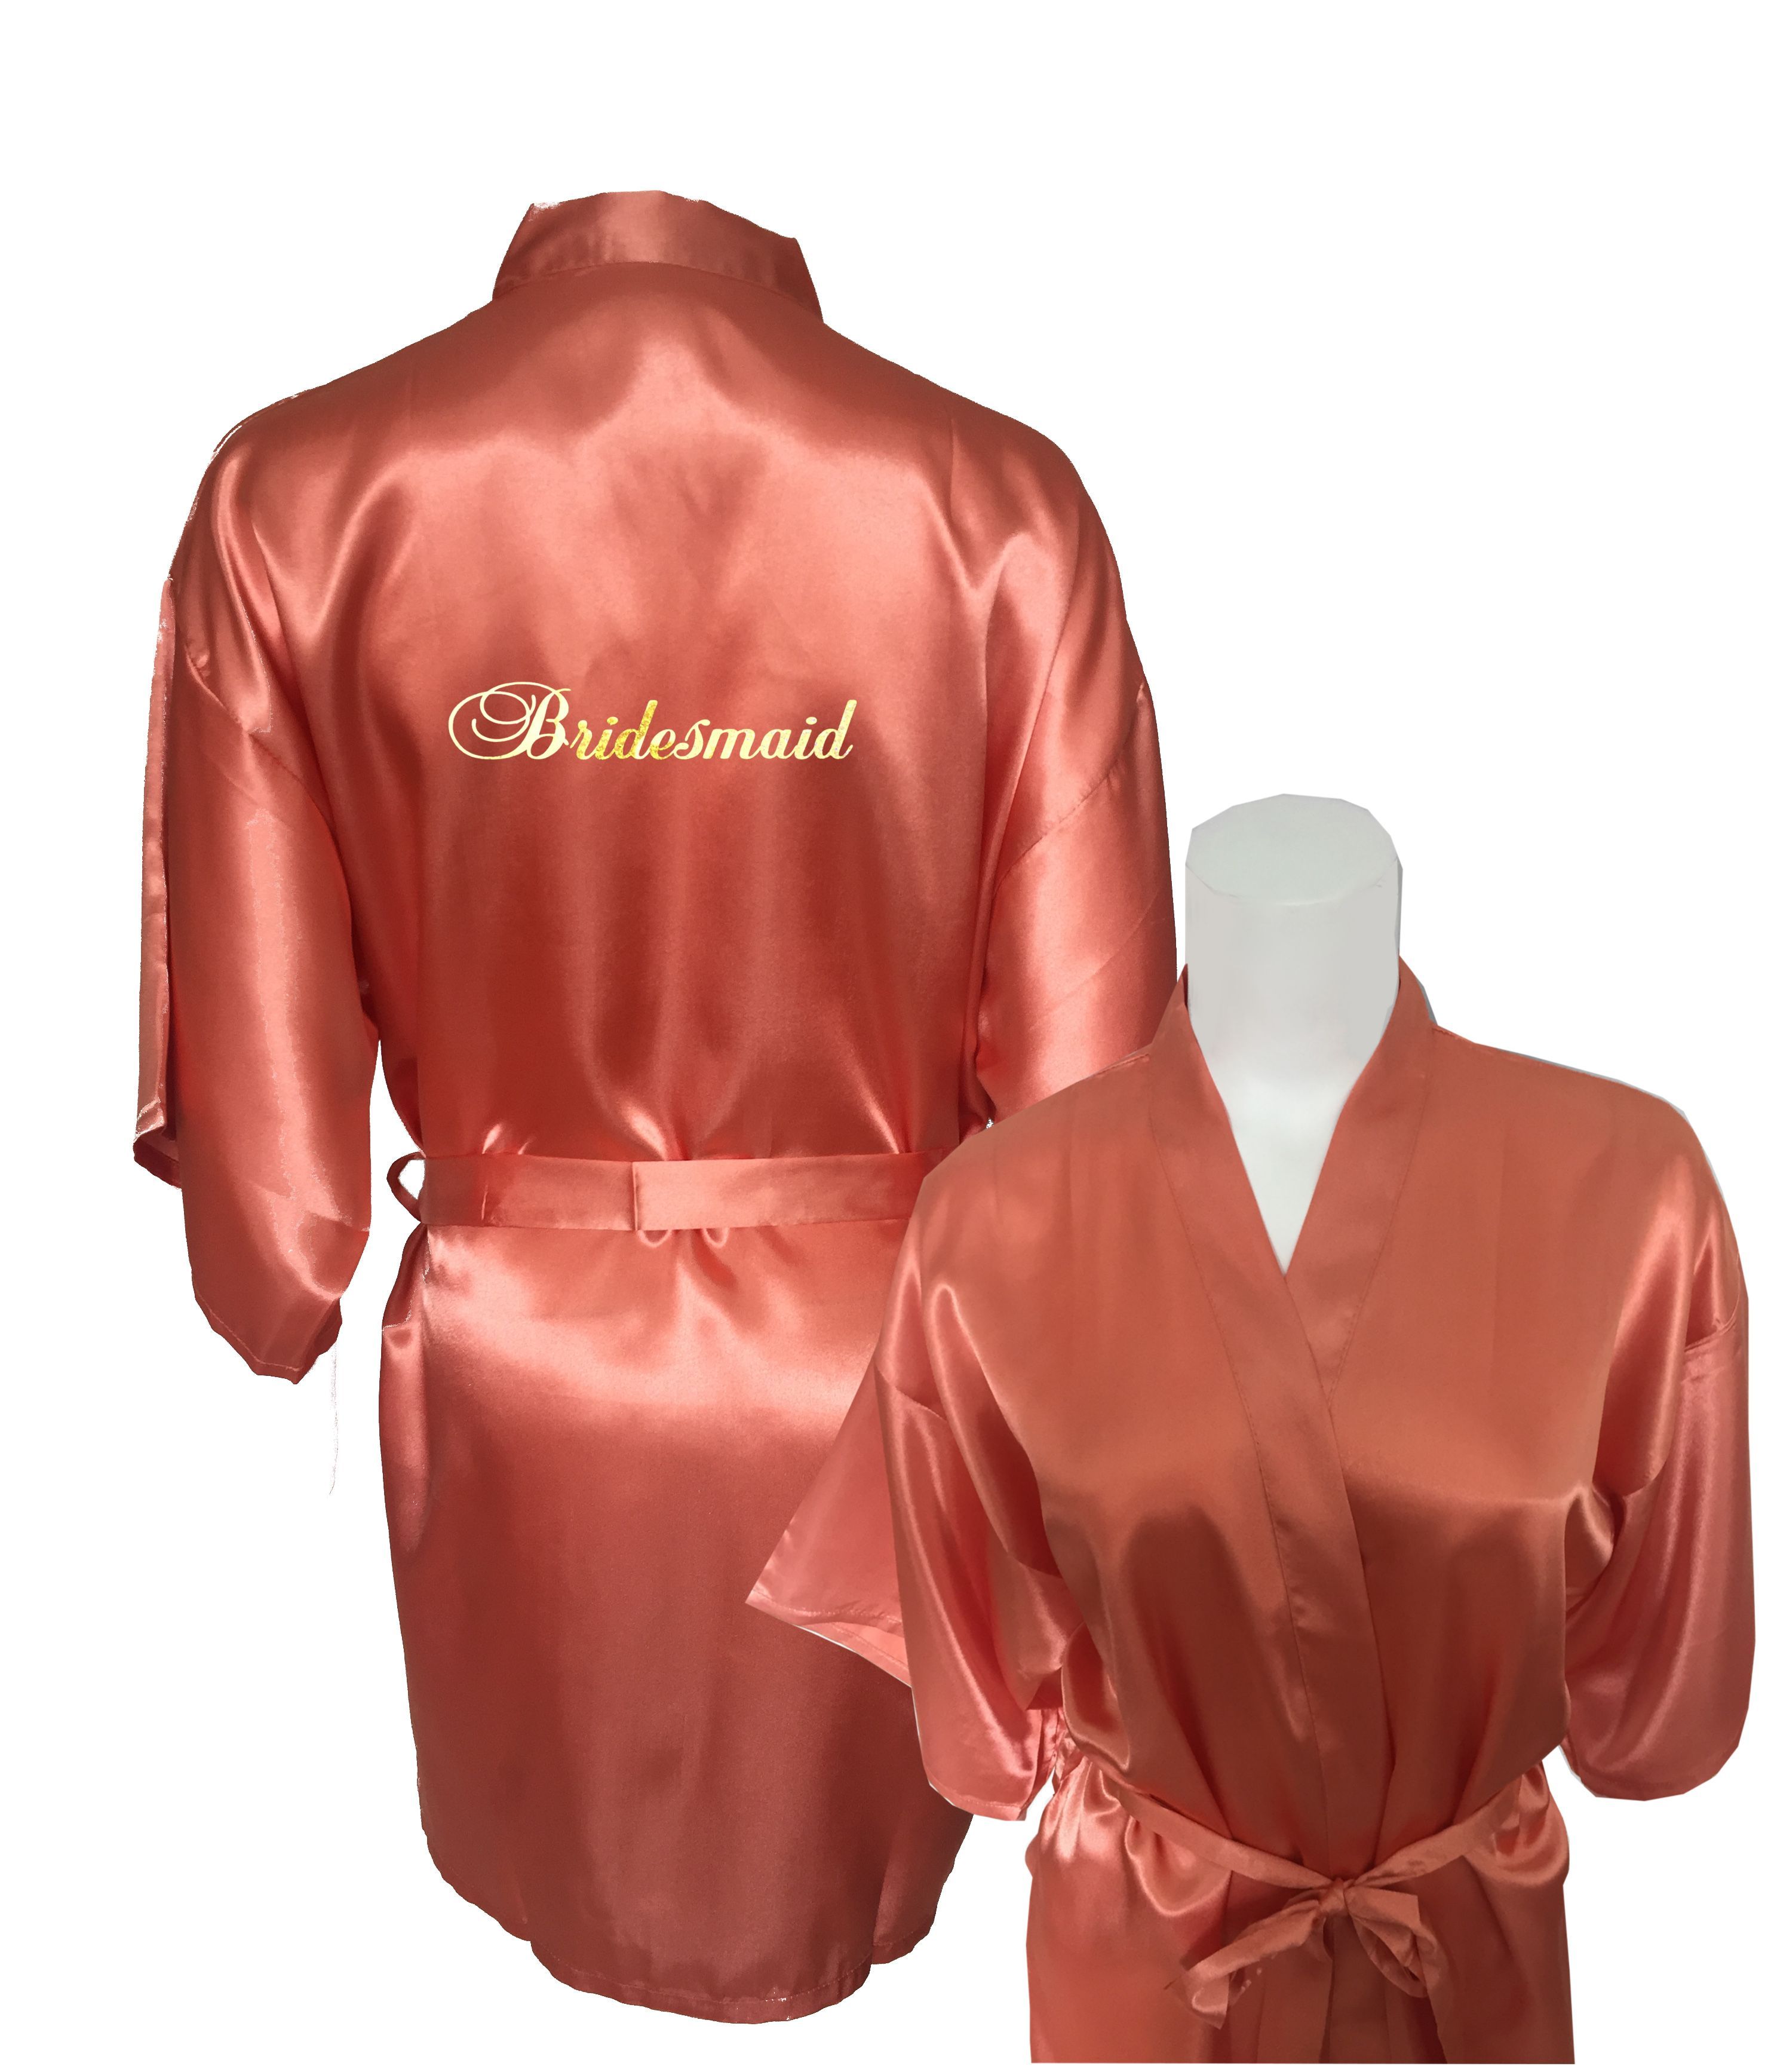 Bridesmaid robes image by Bridal Delights Australia on